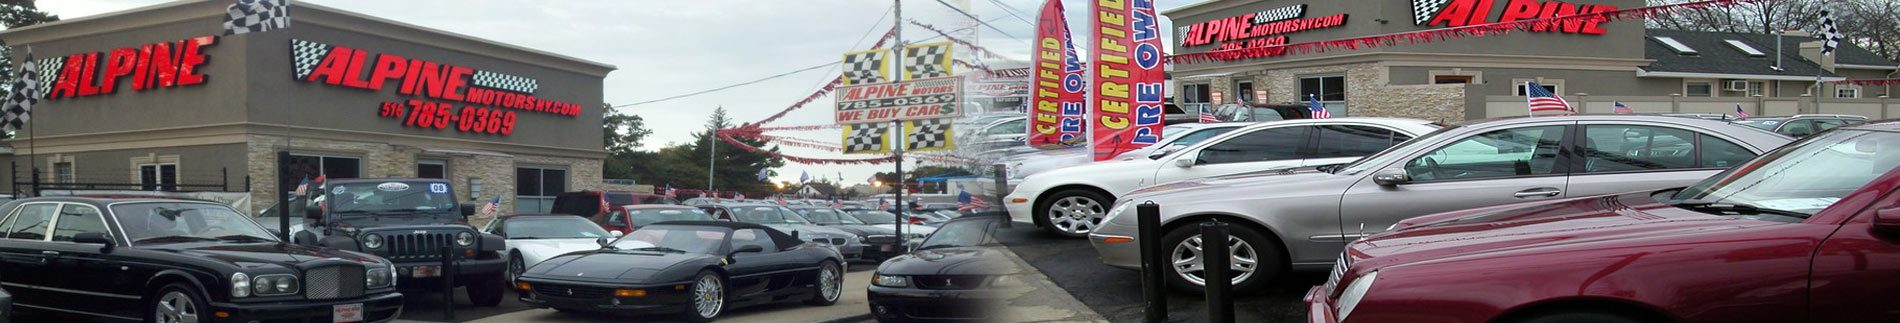 Used cars for sale in Wantagh | Alpine Motors Inc. Wantagh New York